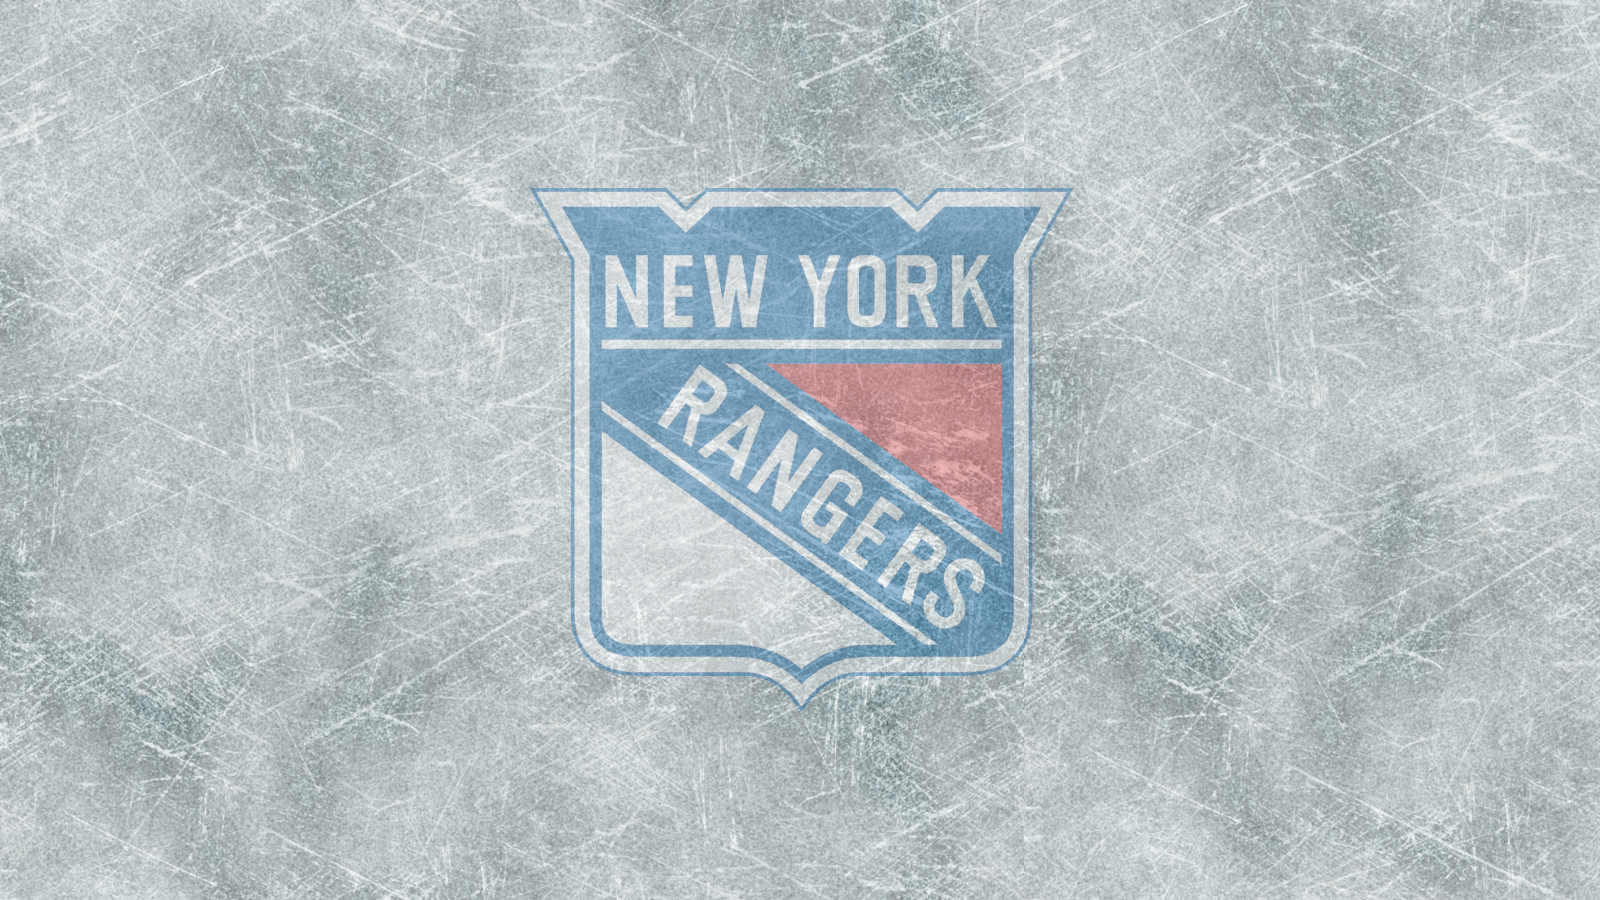 NYR on Ice Wallpaper by TheeMC 1600x900